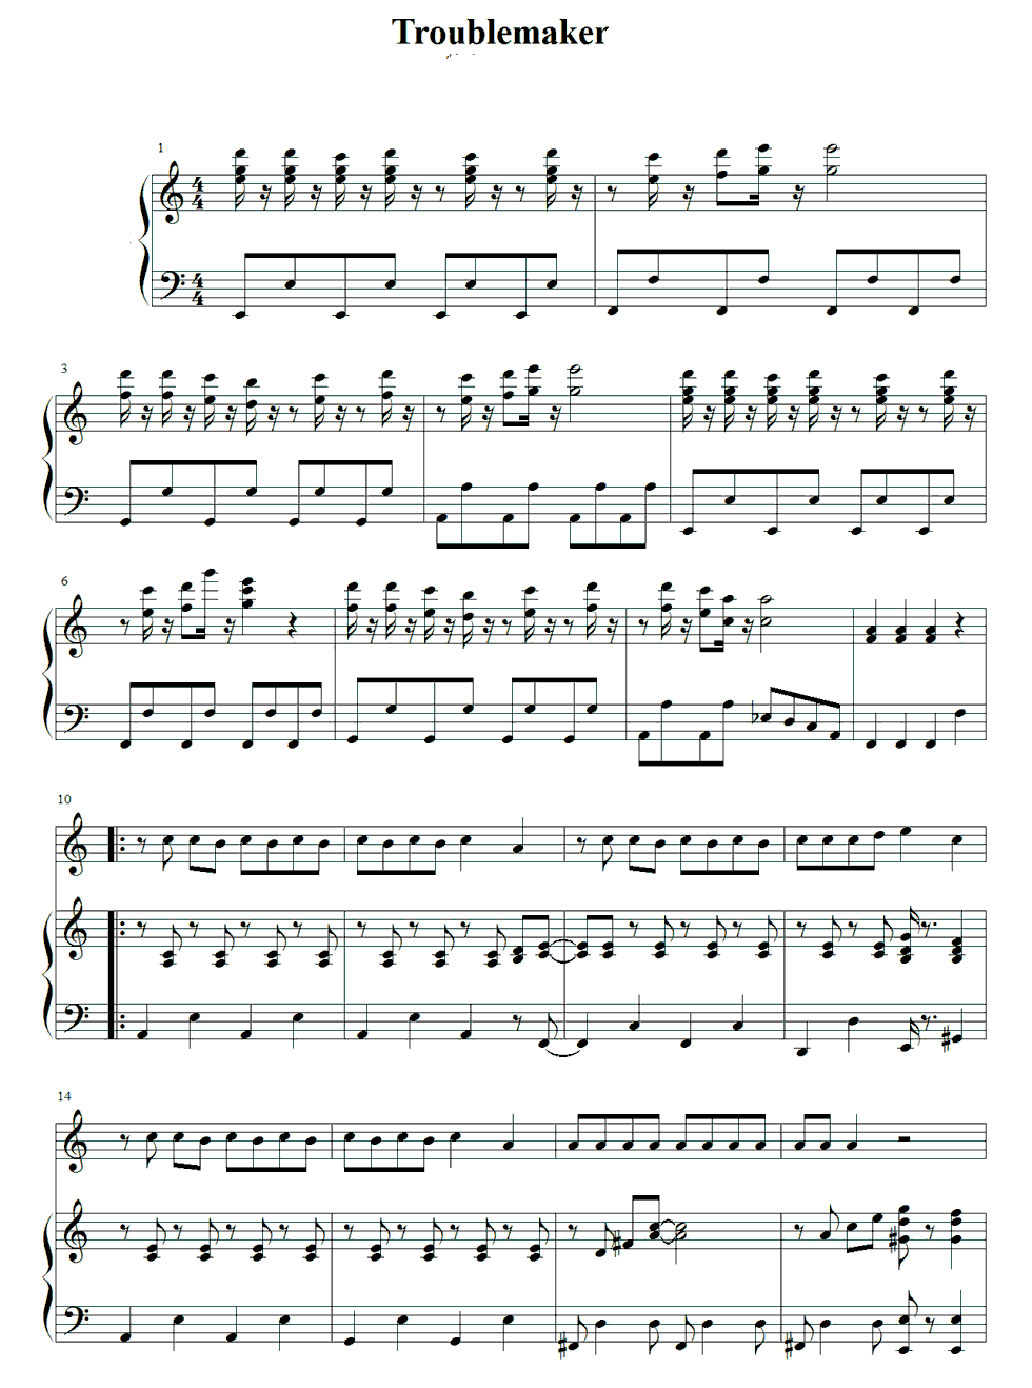 trouble maker piano sheet music notes